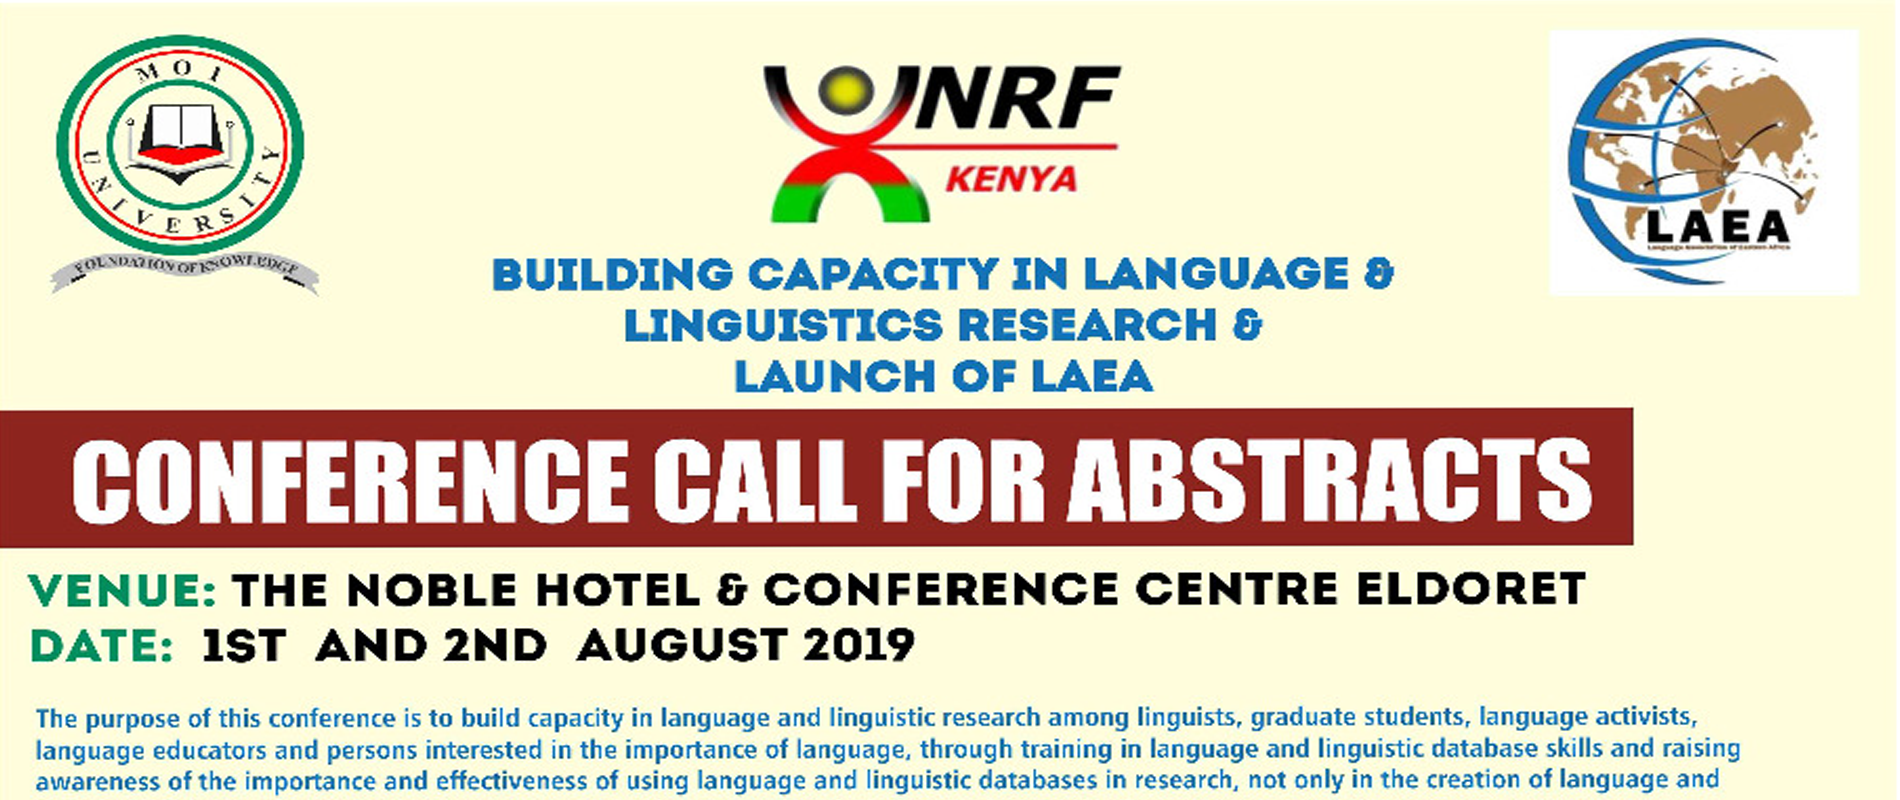 call for abstract poster